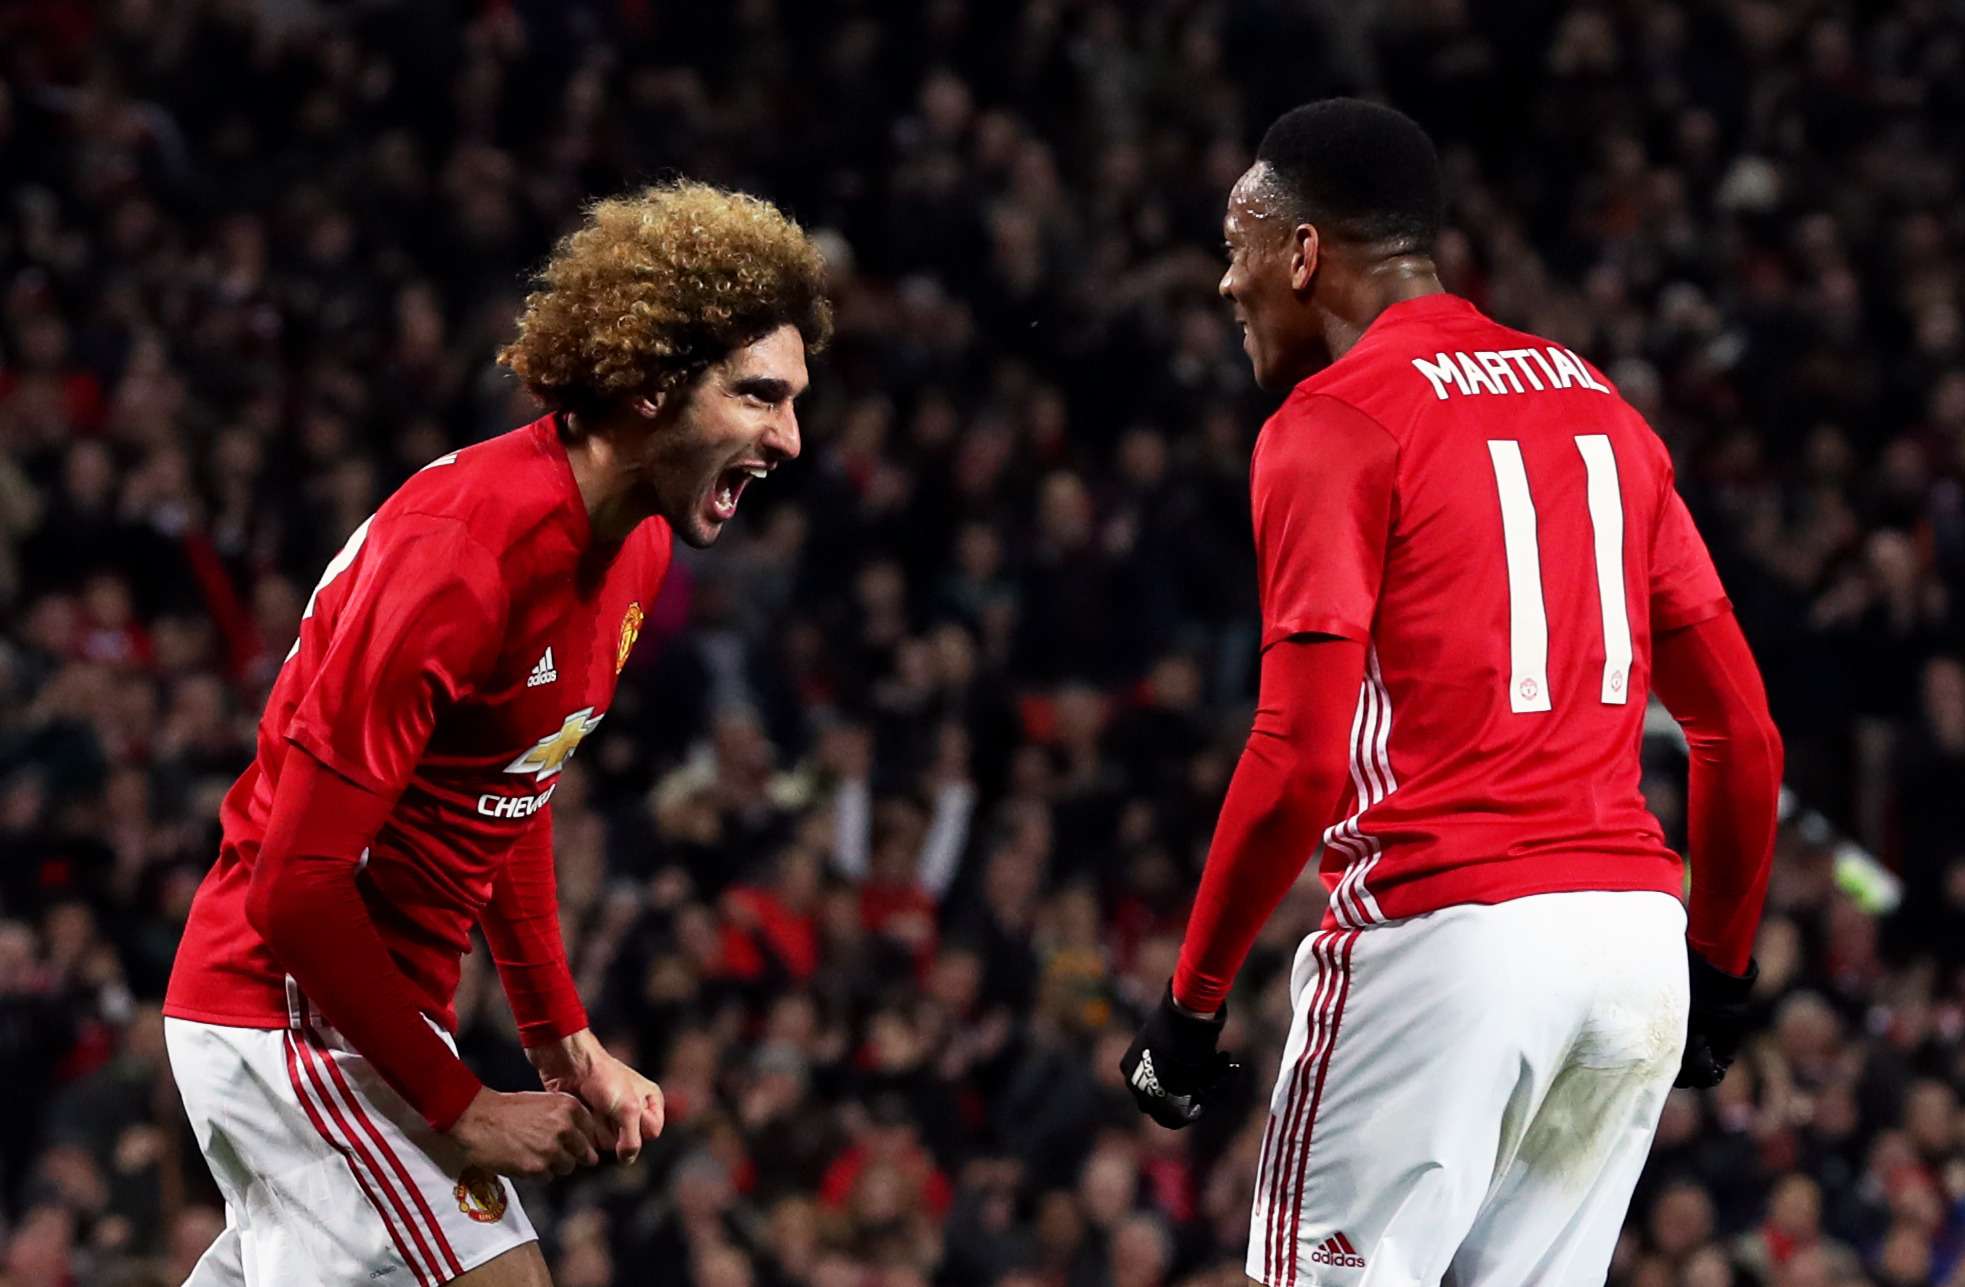 Nothing Concrete - Besiktas Deal Maker Plays Down Marouane Fellaini Rumours